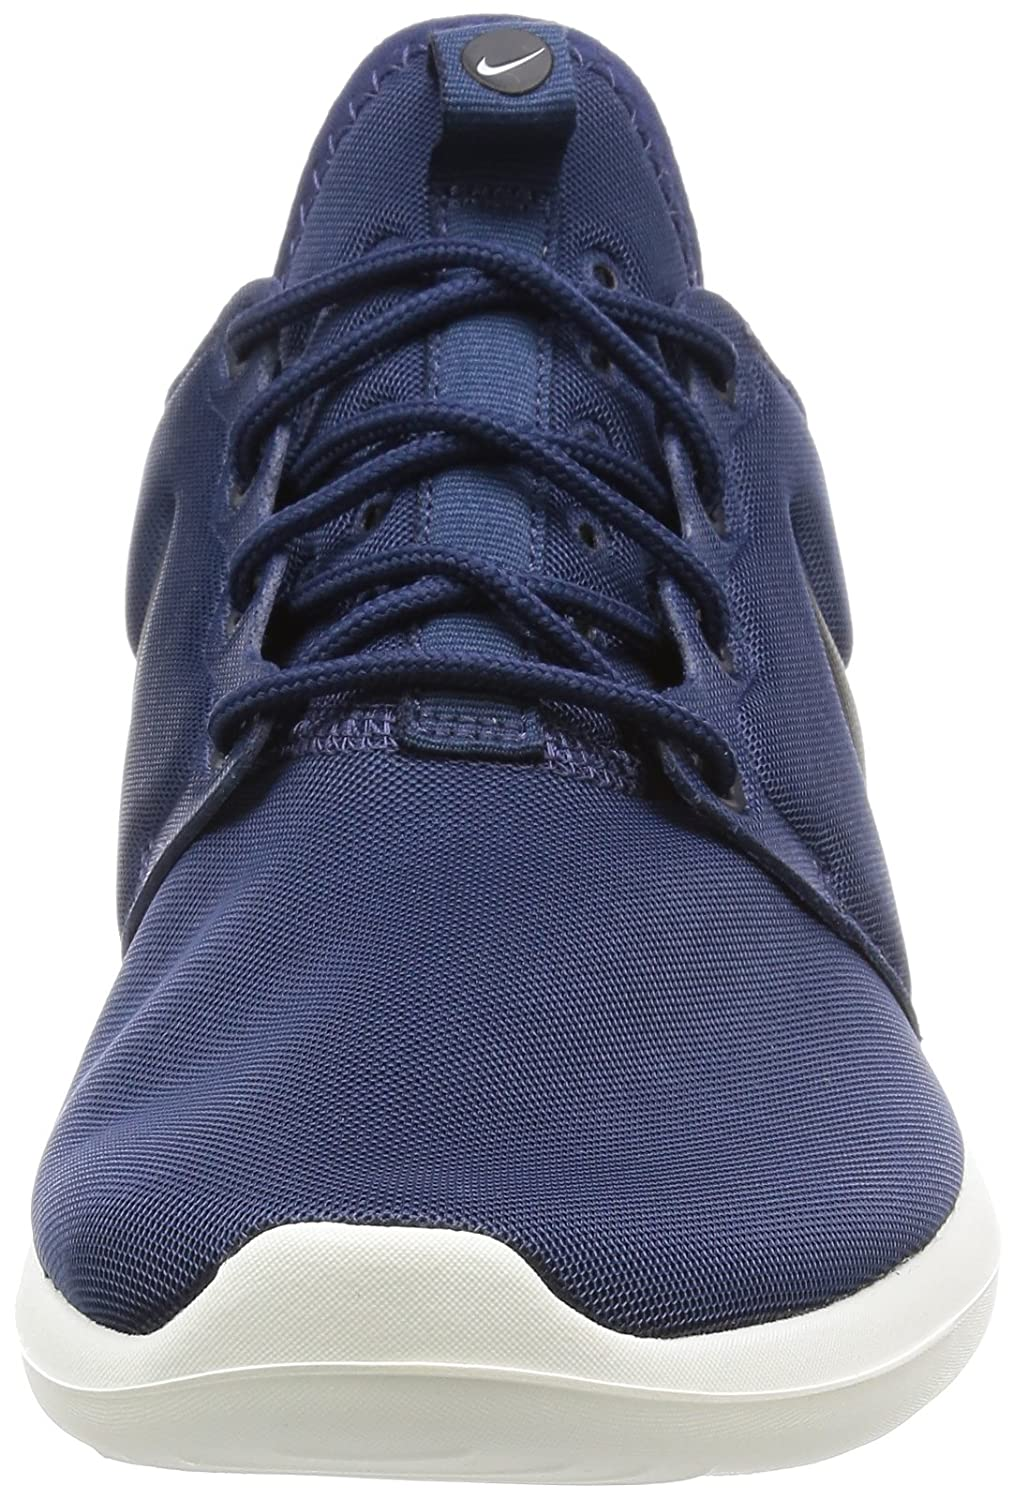 NIKE Men's Roshe Two Running Shoe B00CF6SOCI 7.5 M US|Midnight Navy / Black-sail-volt